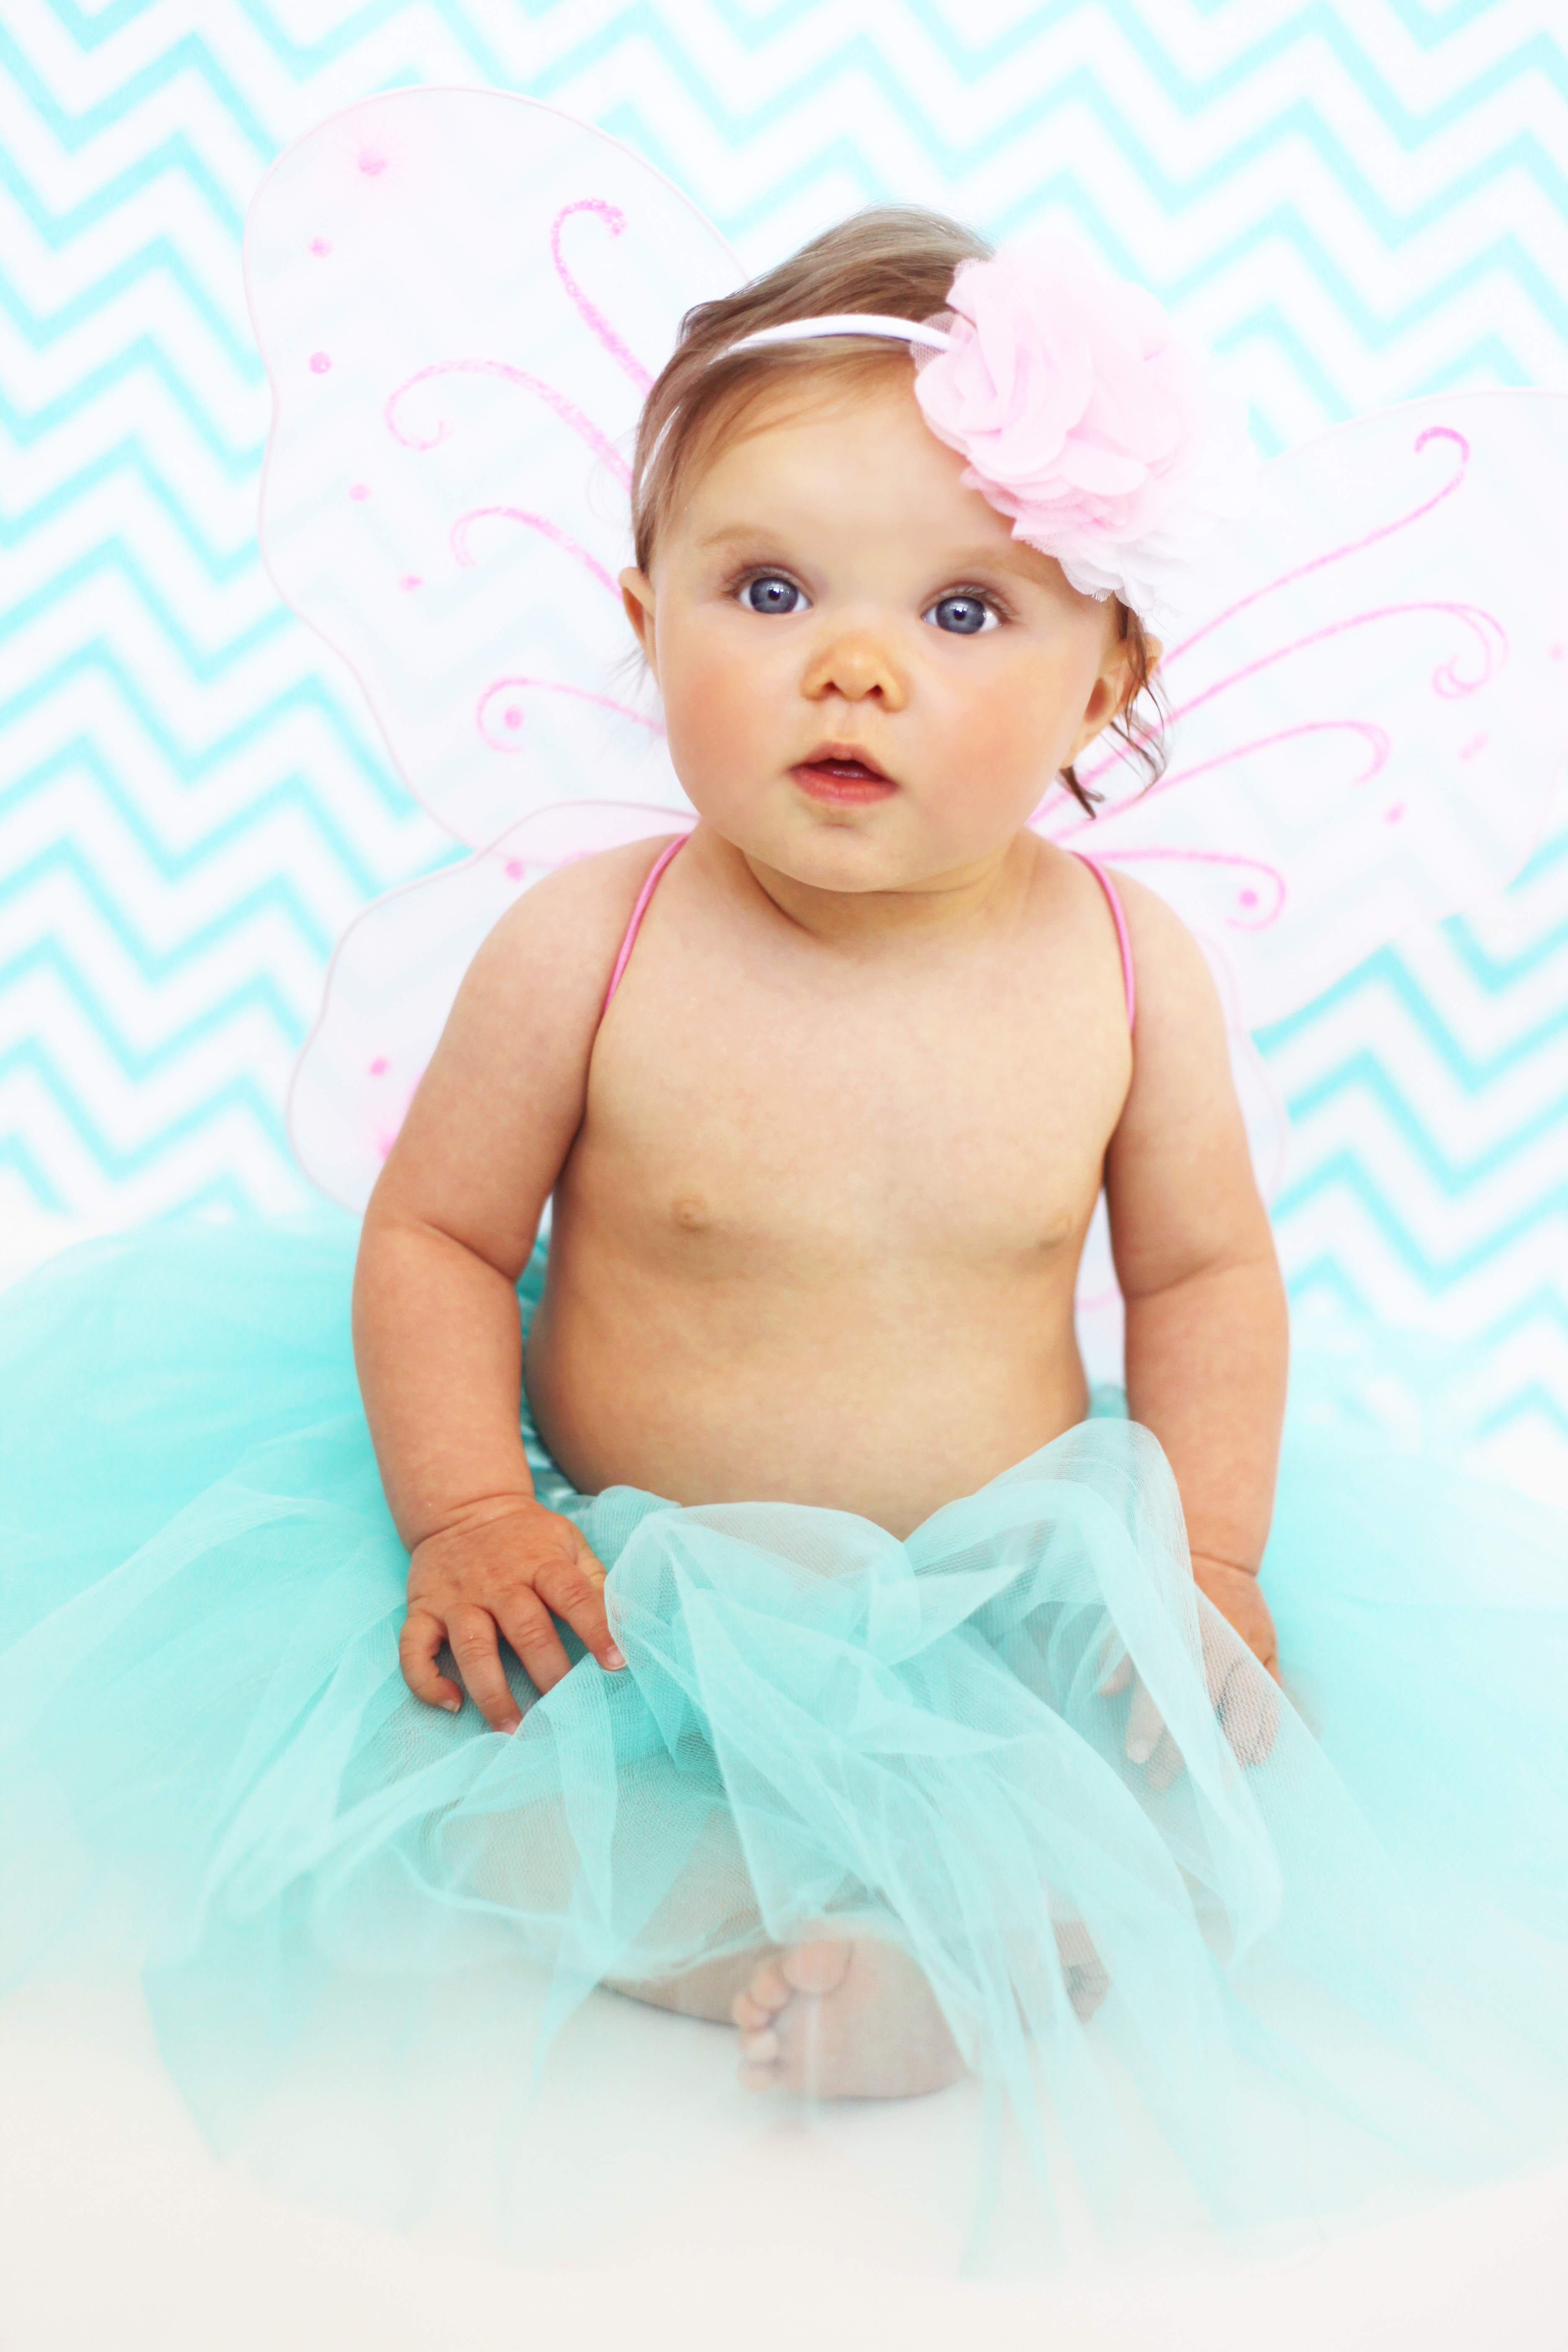 basic-tutu-aqua-butterfly-wings-pink-heart-flower-hb.jpg